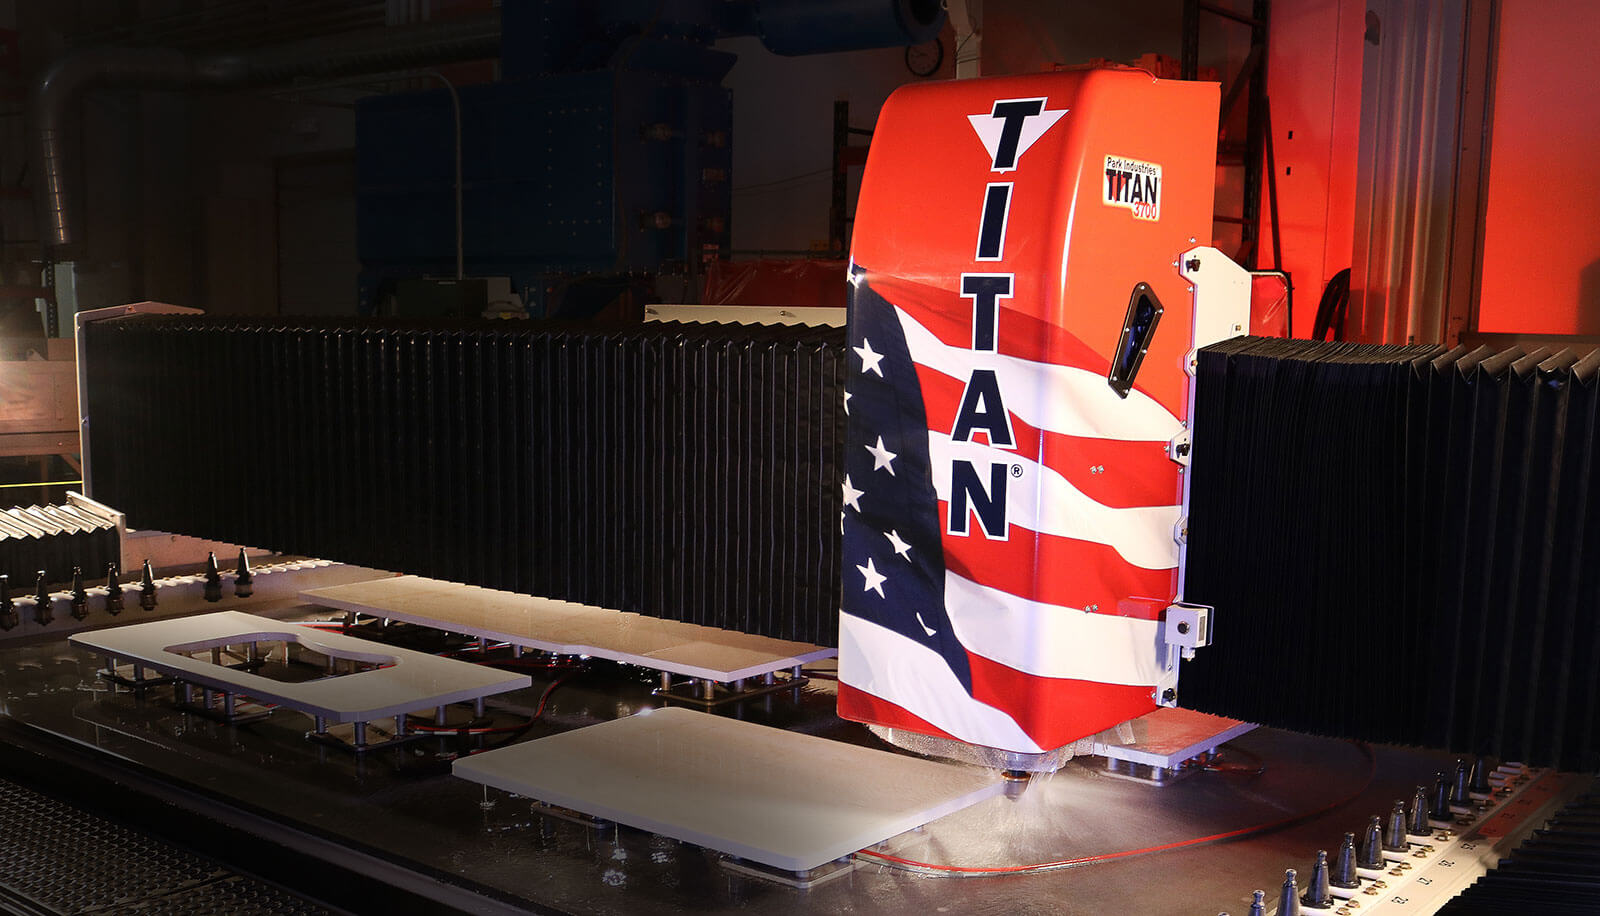 TITAN CNC Router for Stone Fabrication